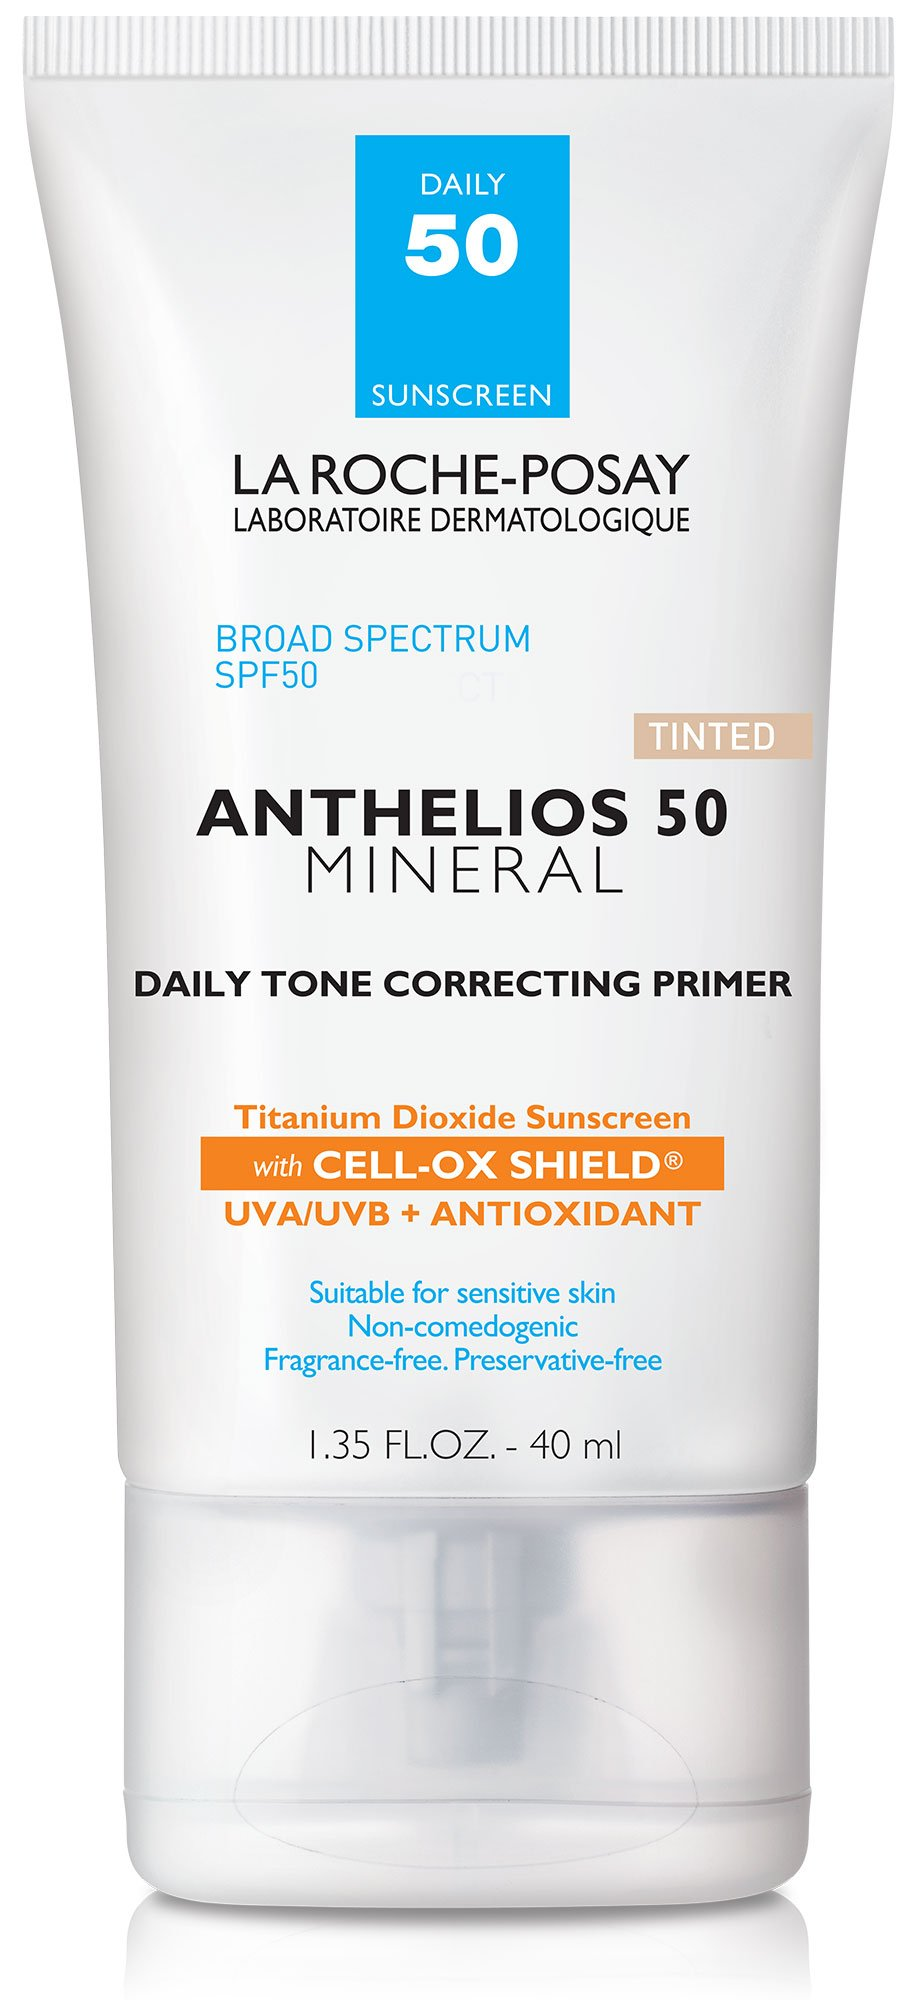 La Roche-Posay Anthelios Daily Tone Correcting Tinted Primer with SPF 50 Mineral Sunscreen, 1.35 Fl. Oz.